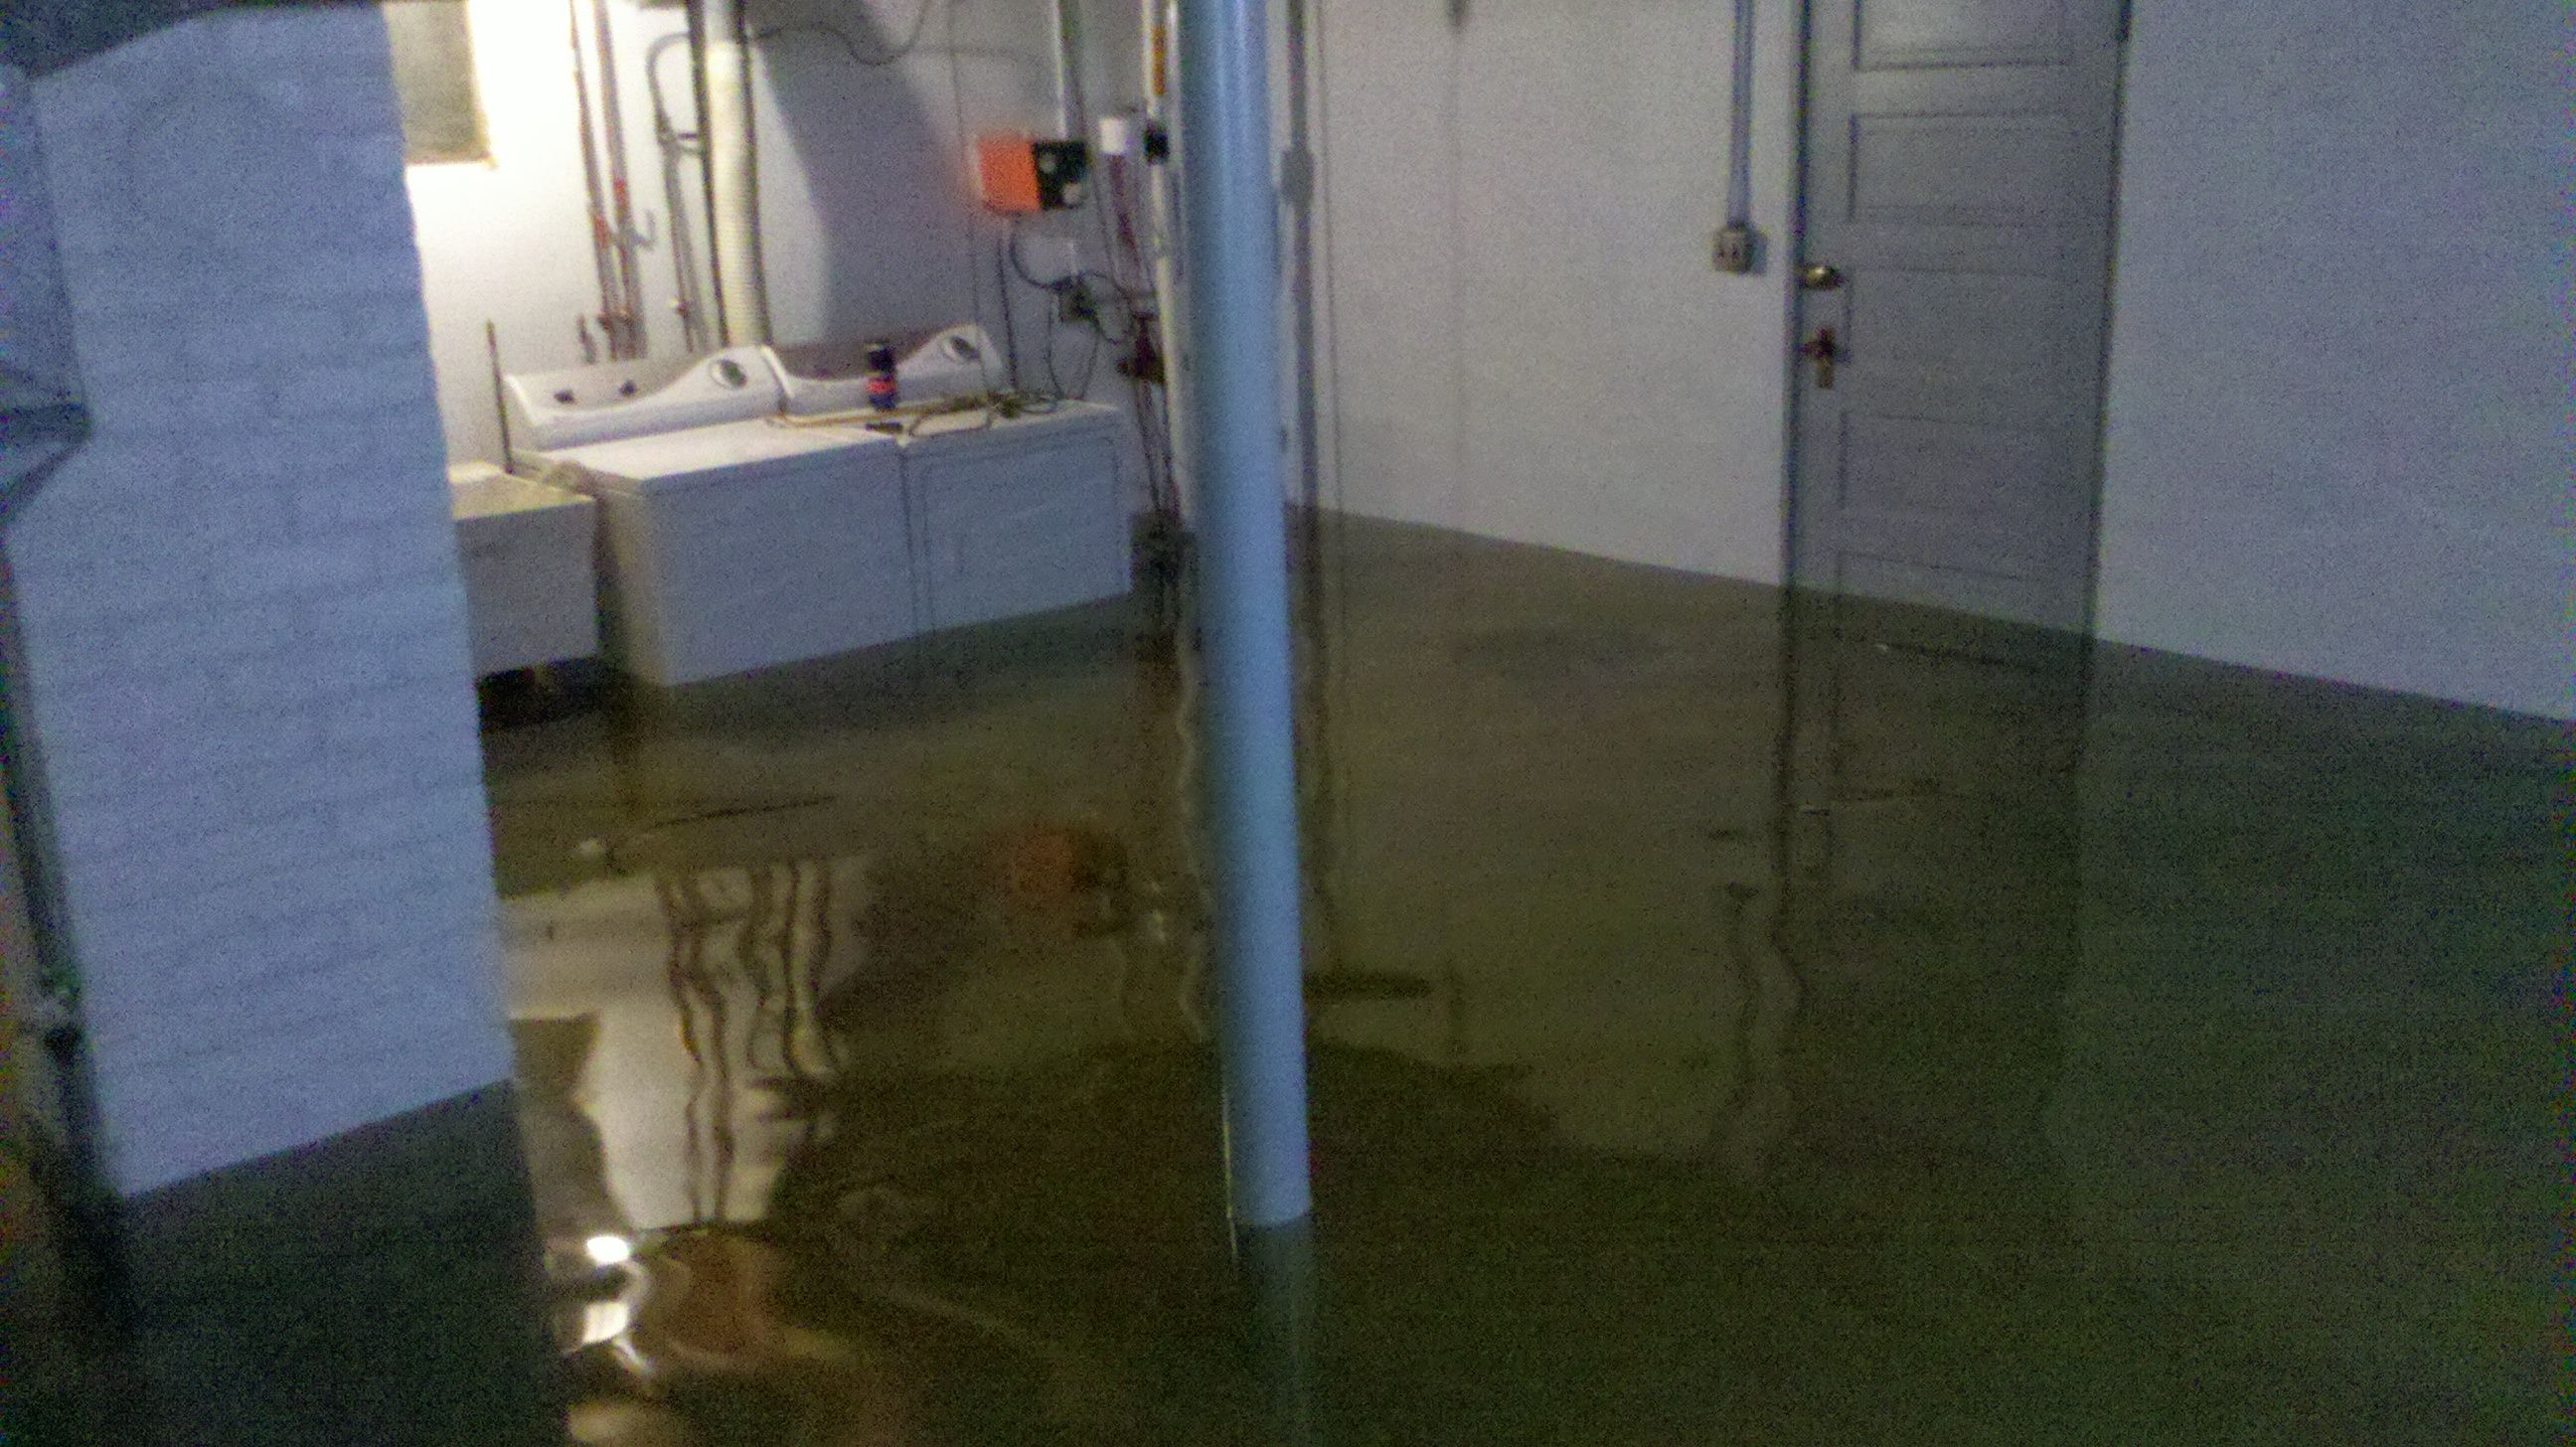 Basement flood. After a water supply line ruptured, the